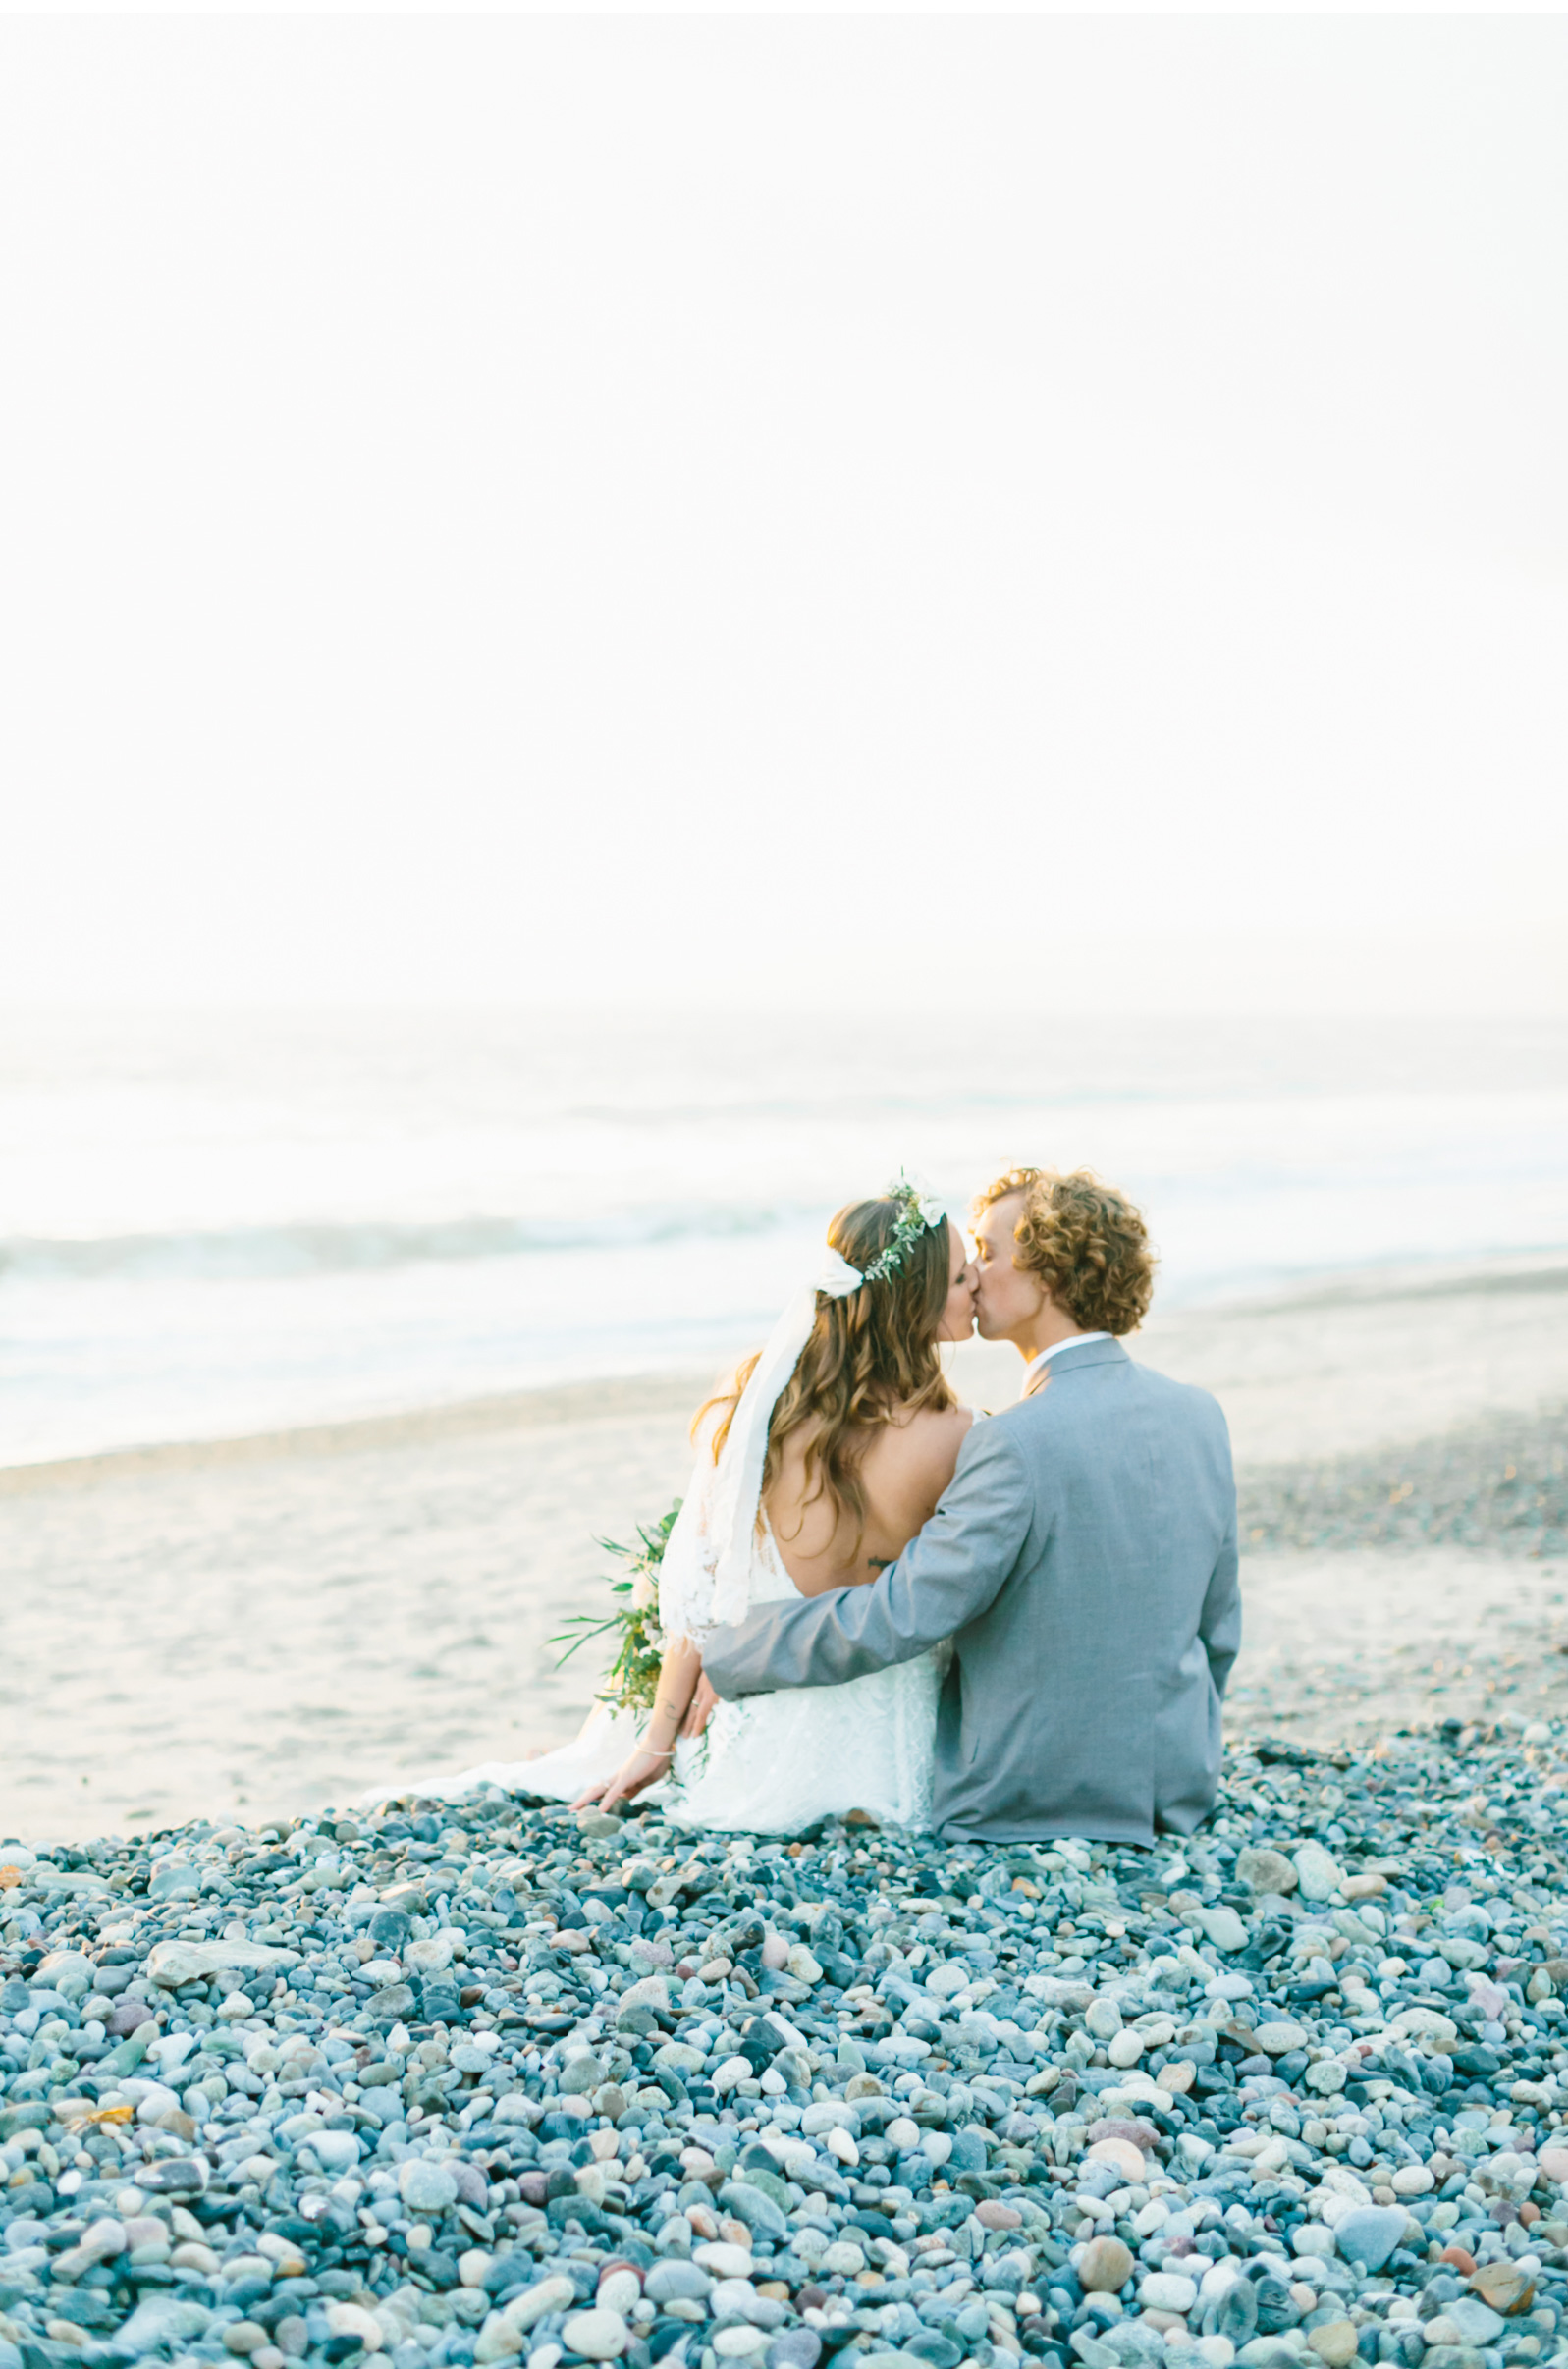 San-Clemente-Wedding-The-Casino-Natalie-Schutt-Photography_09.jpg